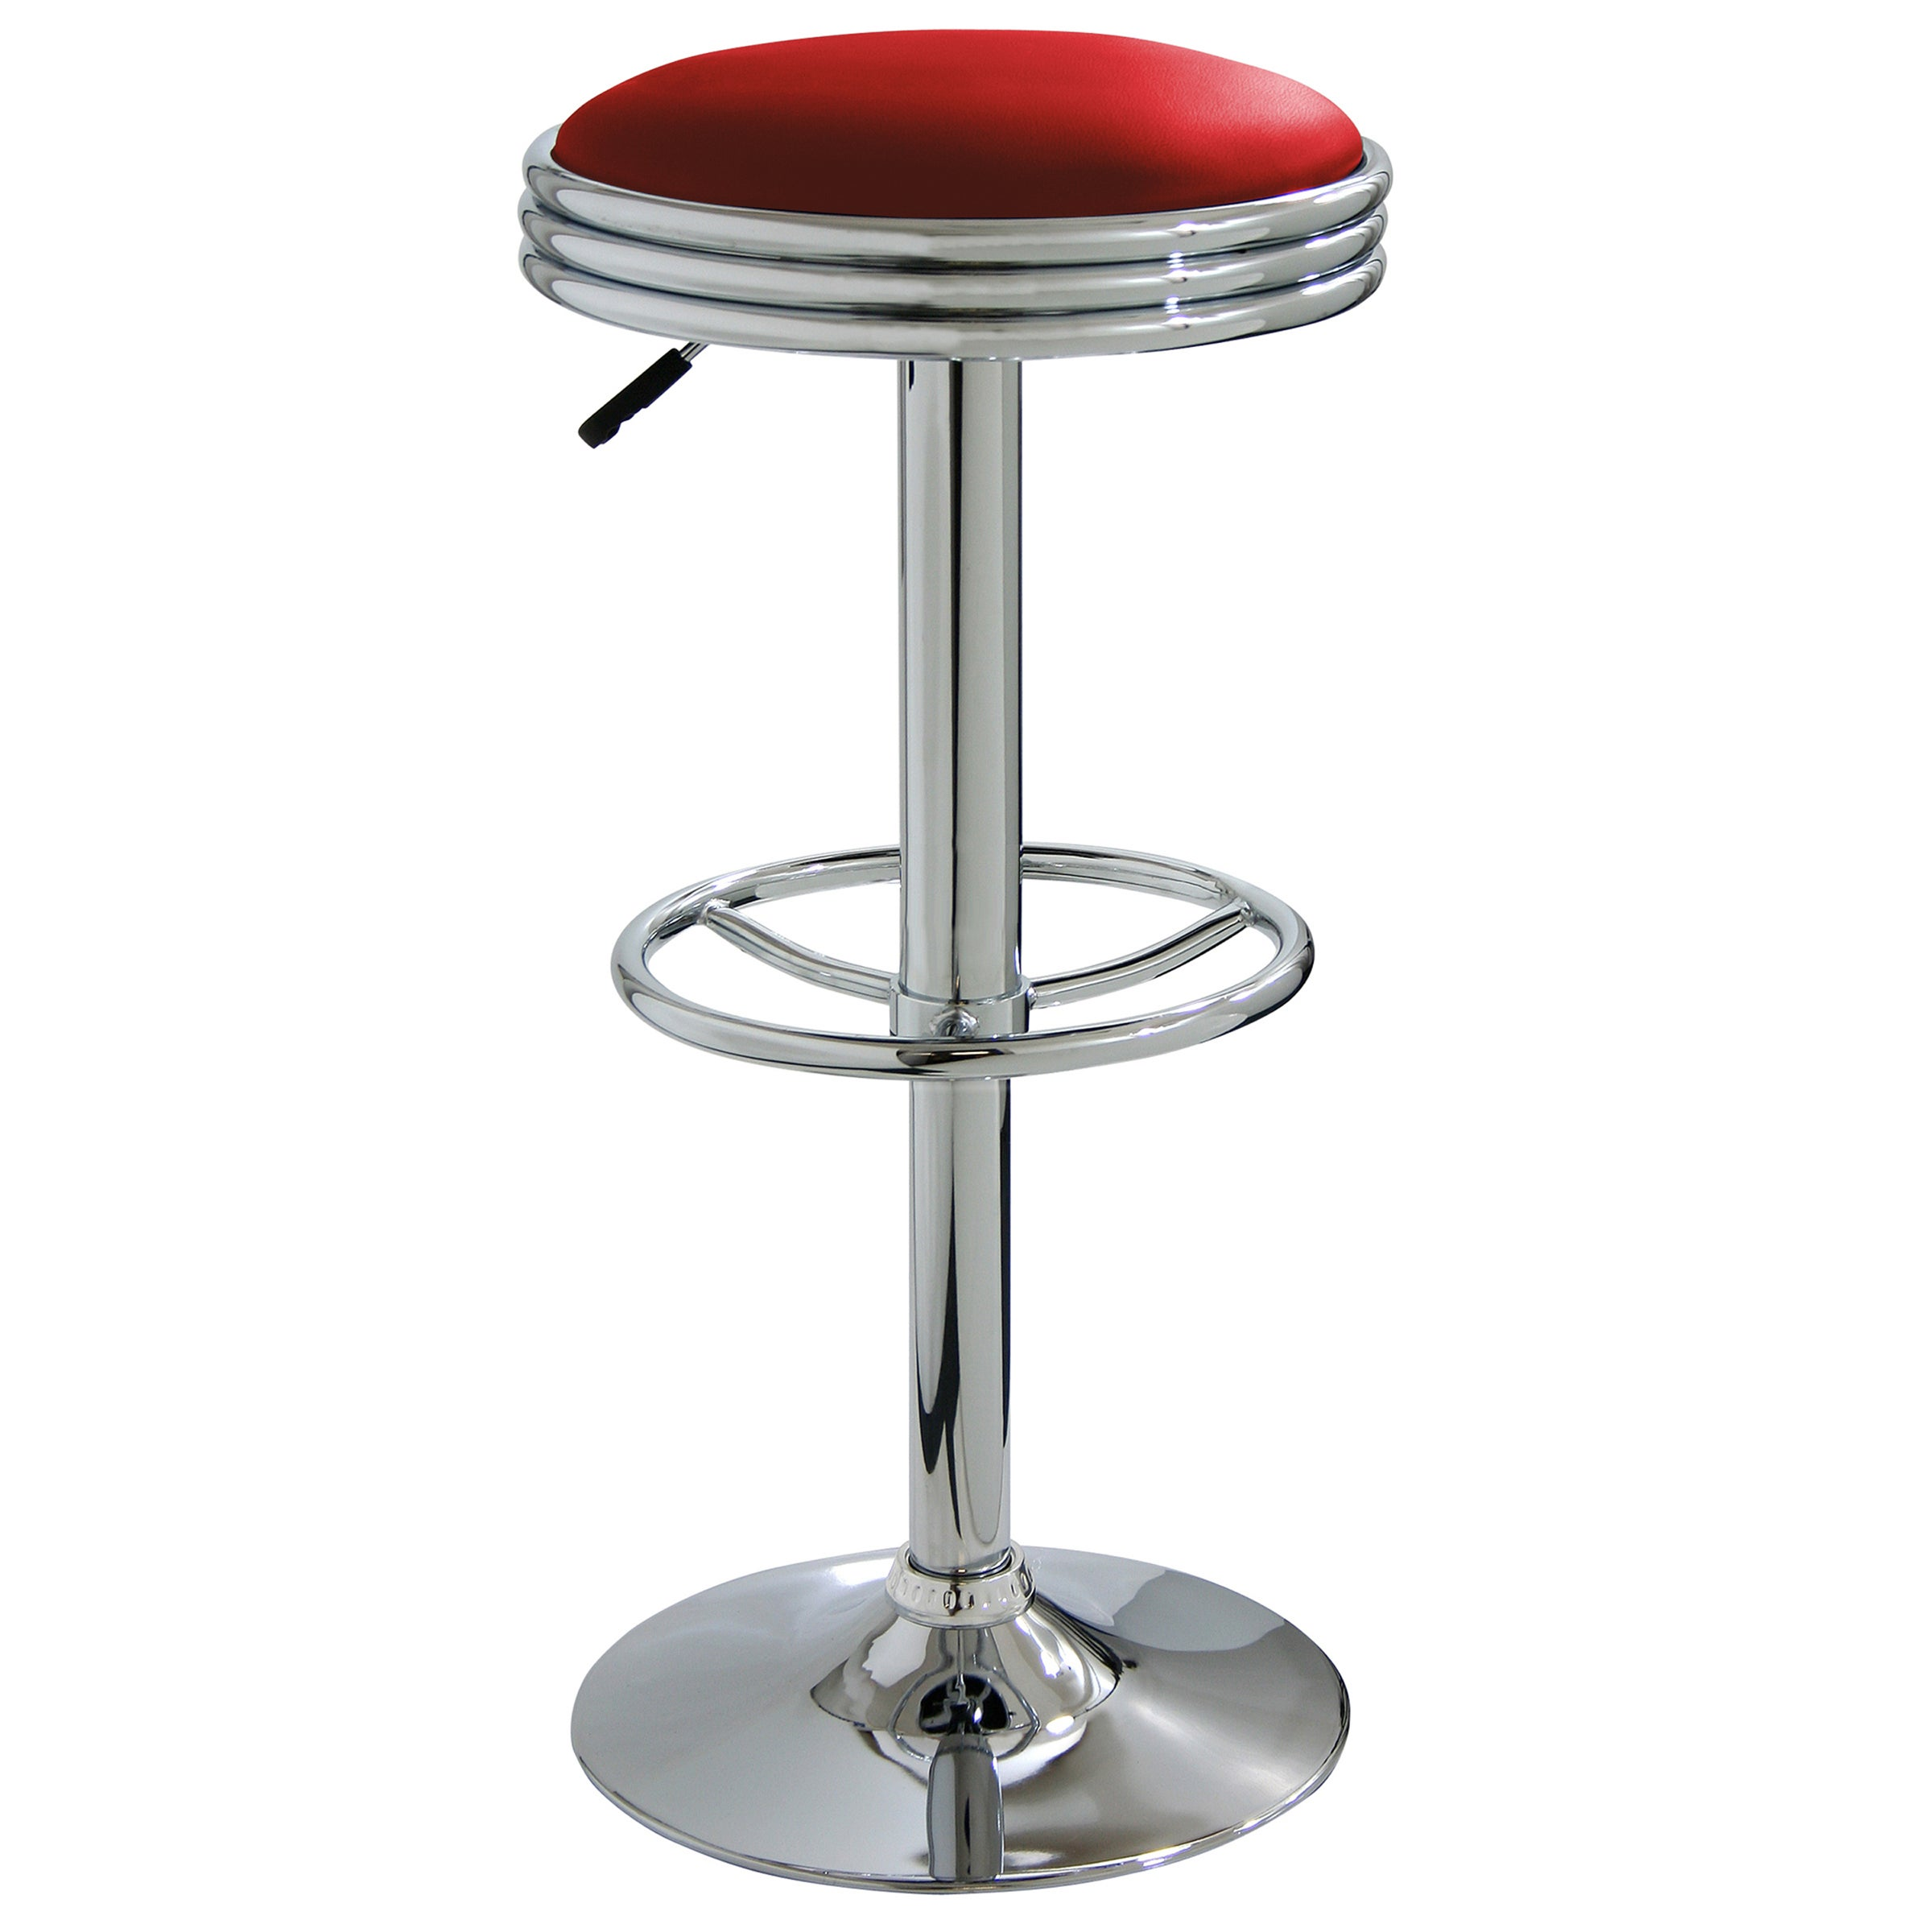 Amerihome Soda Fountain Red Bar Stool Free Shipping Today 7684157